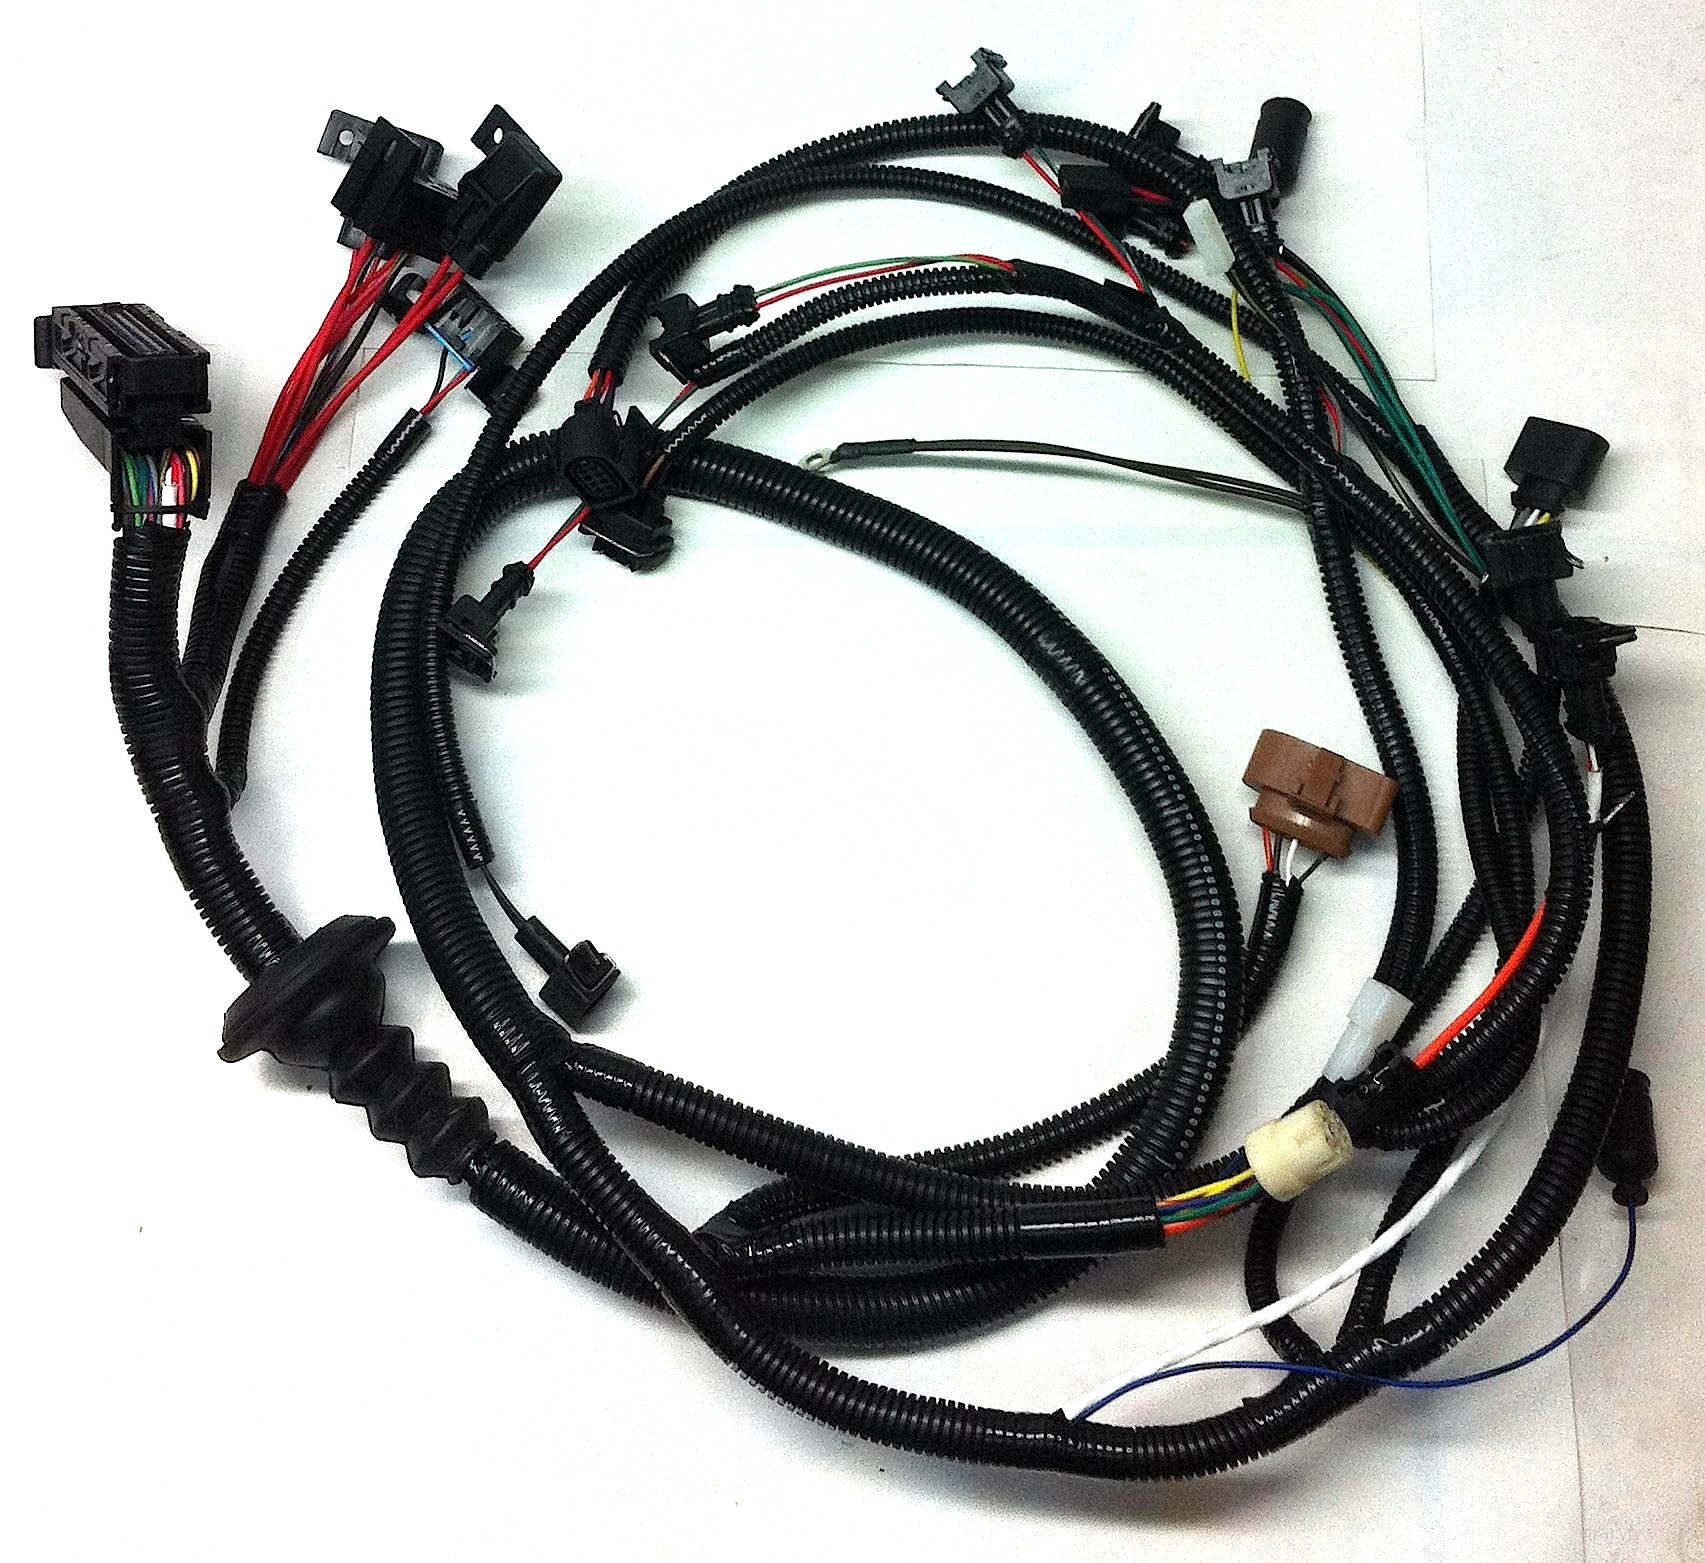 Wiring_Harness_2LR 2lr tiico conversion wiring harness foreign auto & supply, inc wire harnesses at bayanpartner.co